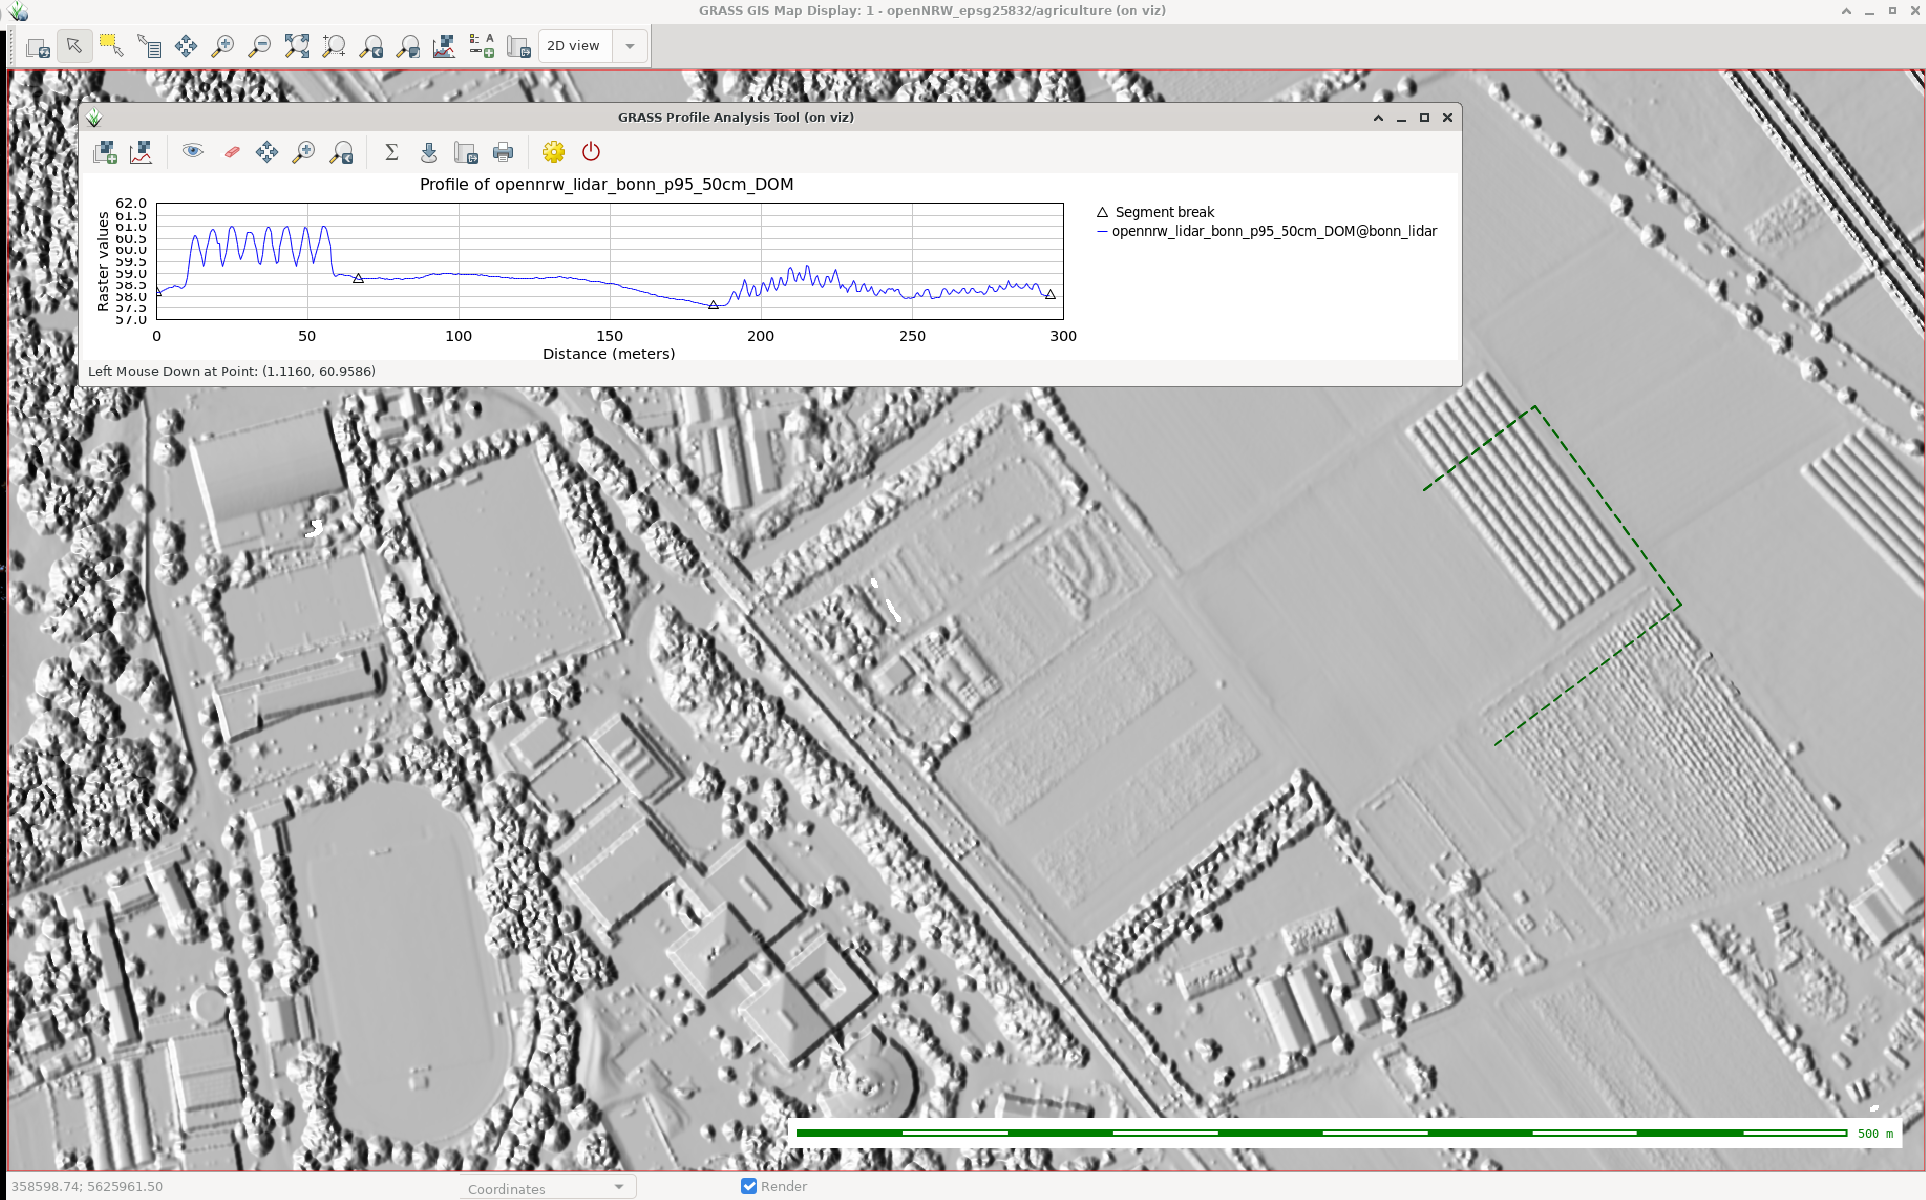 Processed LiDAR data in GRASS GIS (screenshot by @neteler)